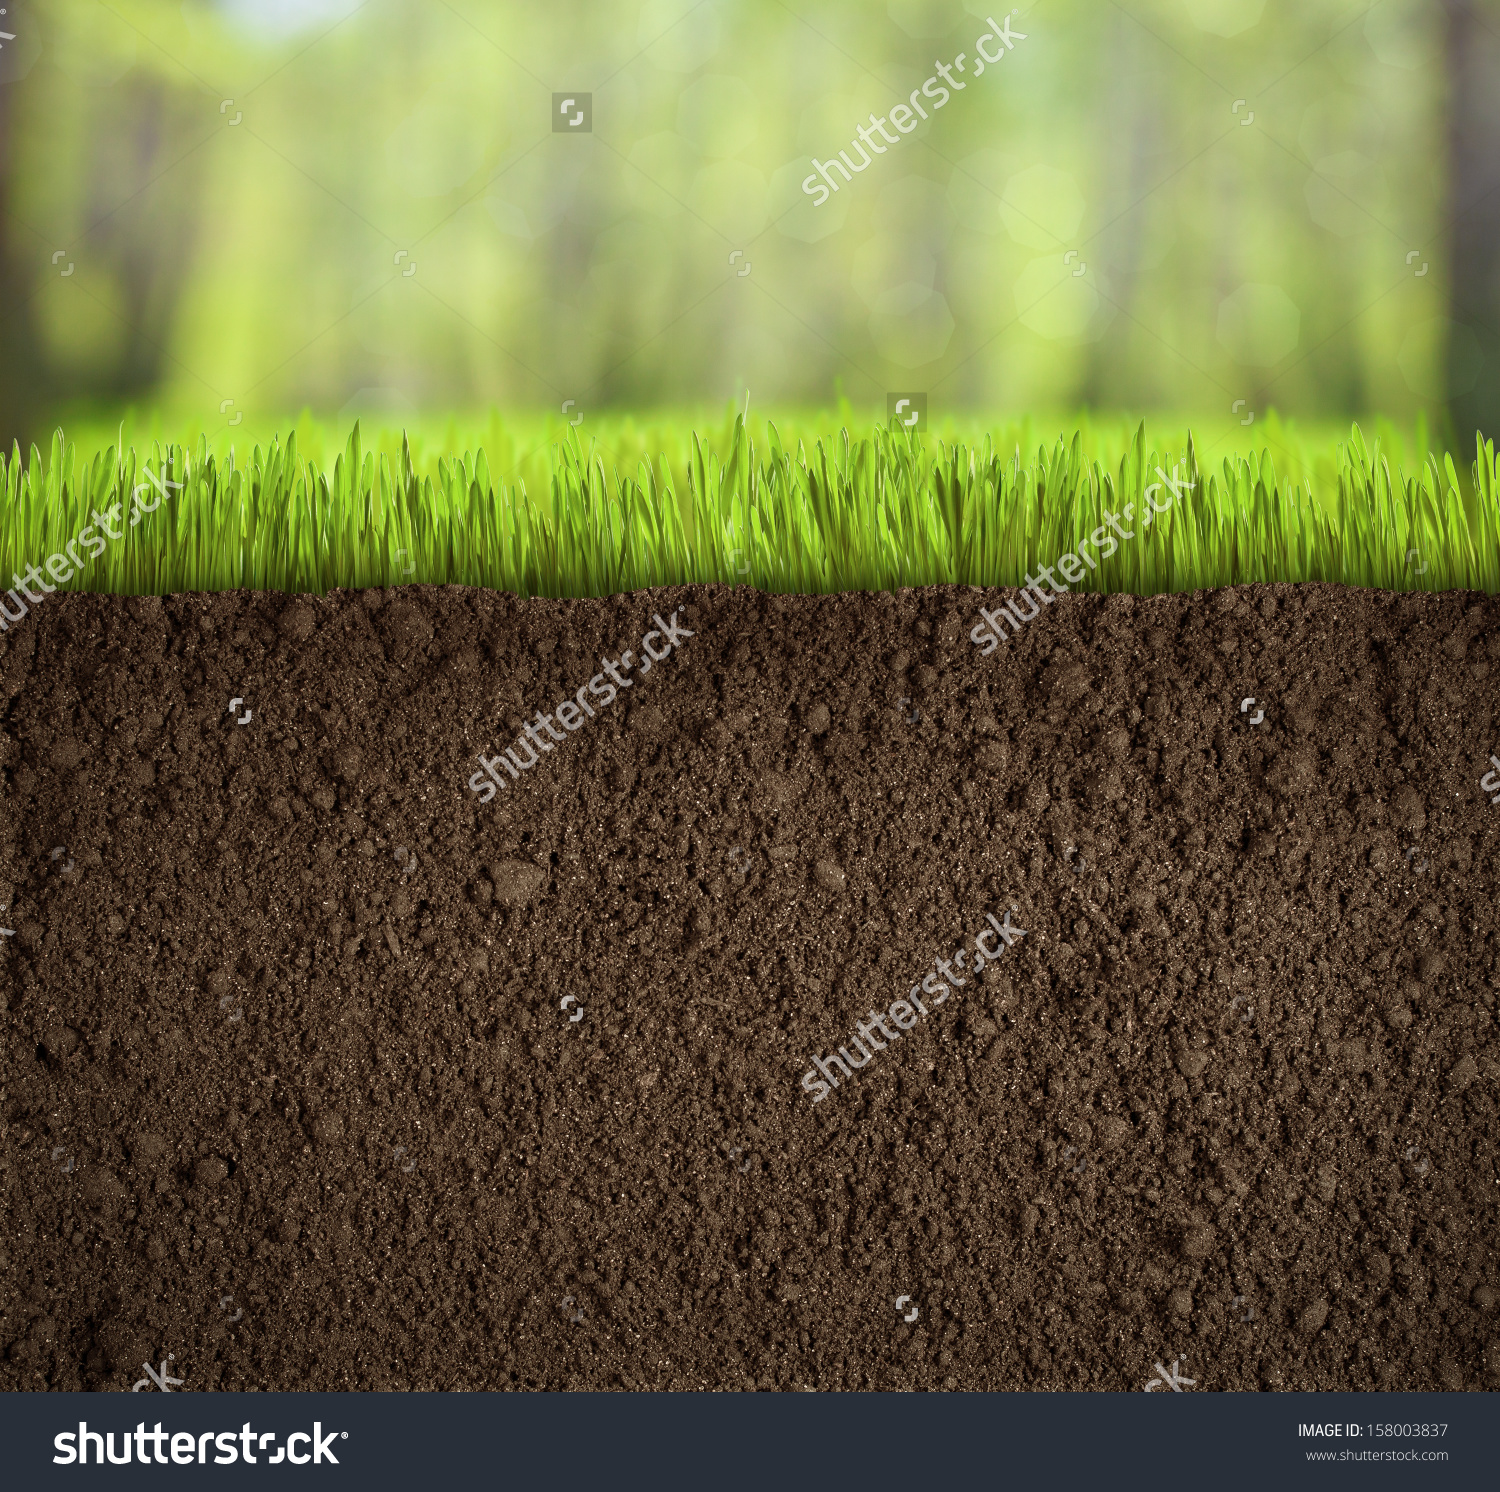 Soil Under Grass Forest Stock Photo 158003837.